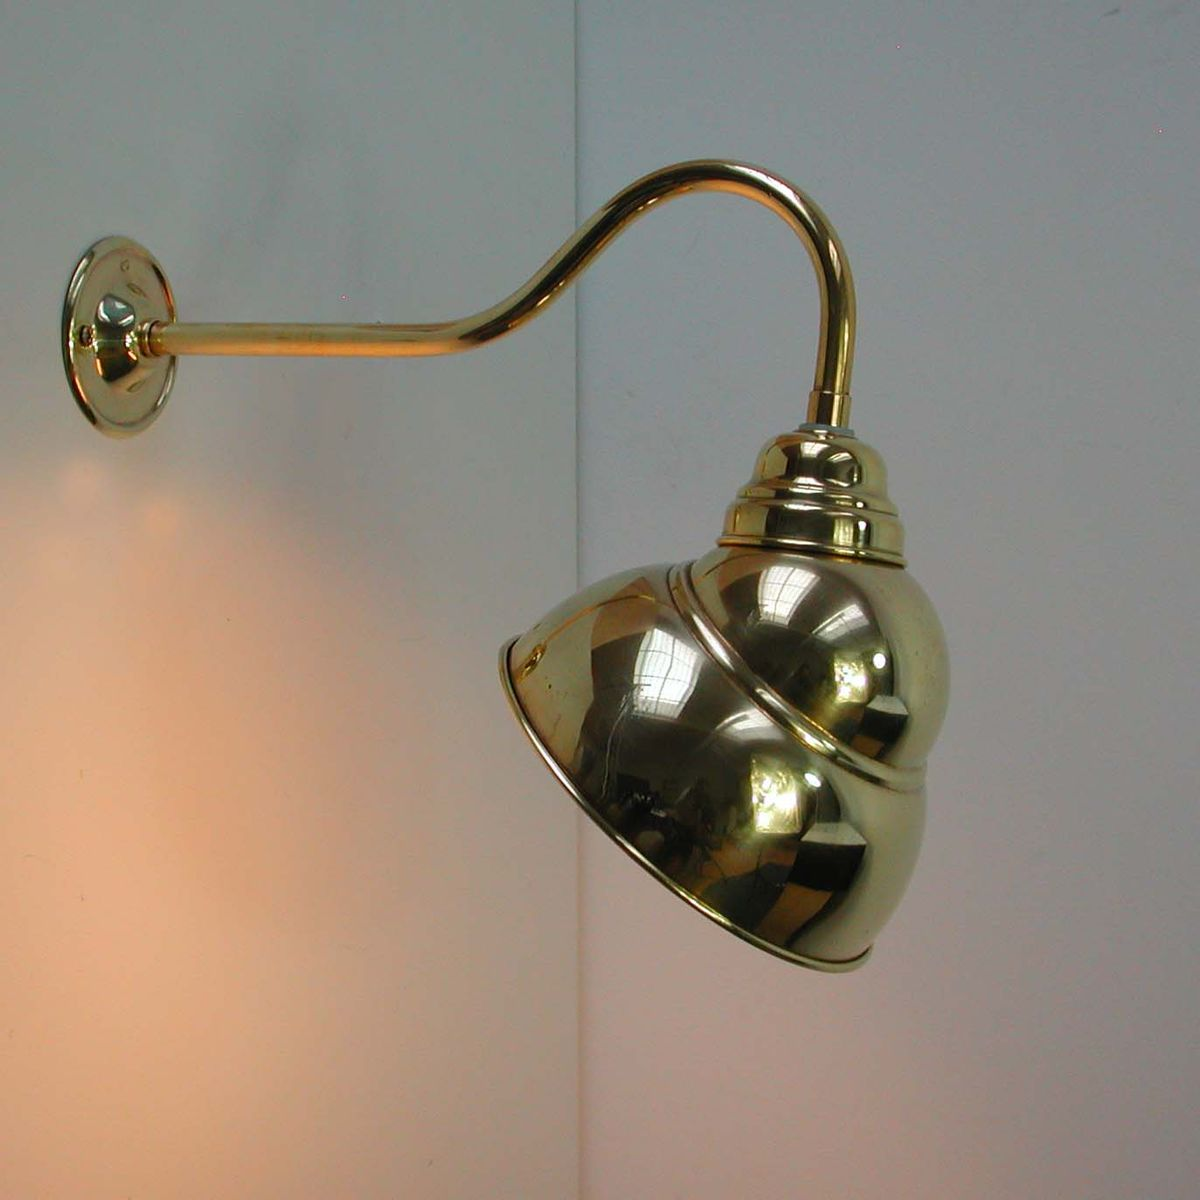 Wall Lamps Brass : French Industrial Brass Wall Lamp Sconce, 1950s for sale at Pamono